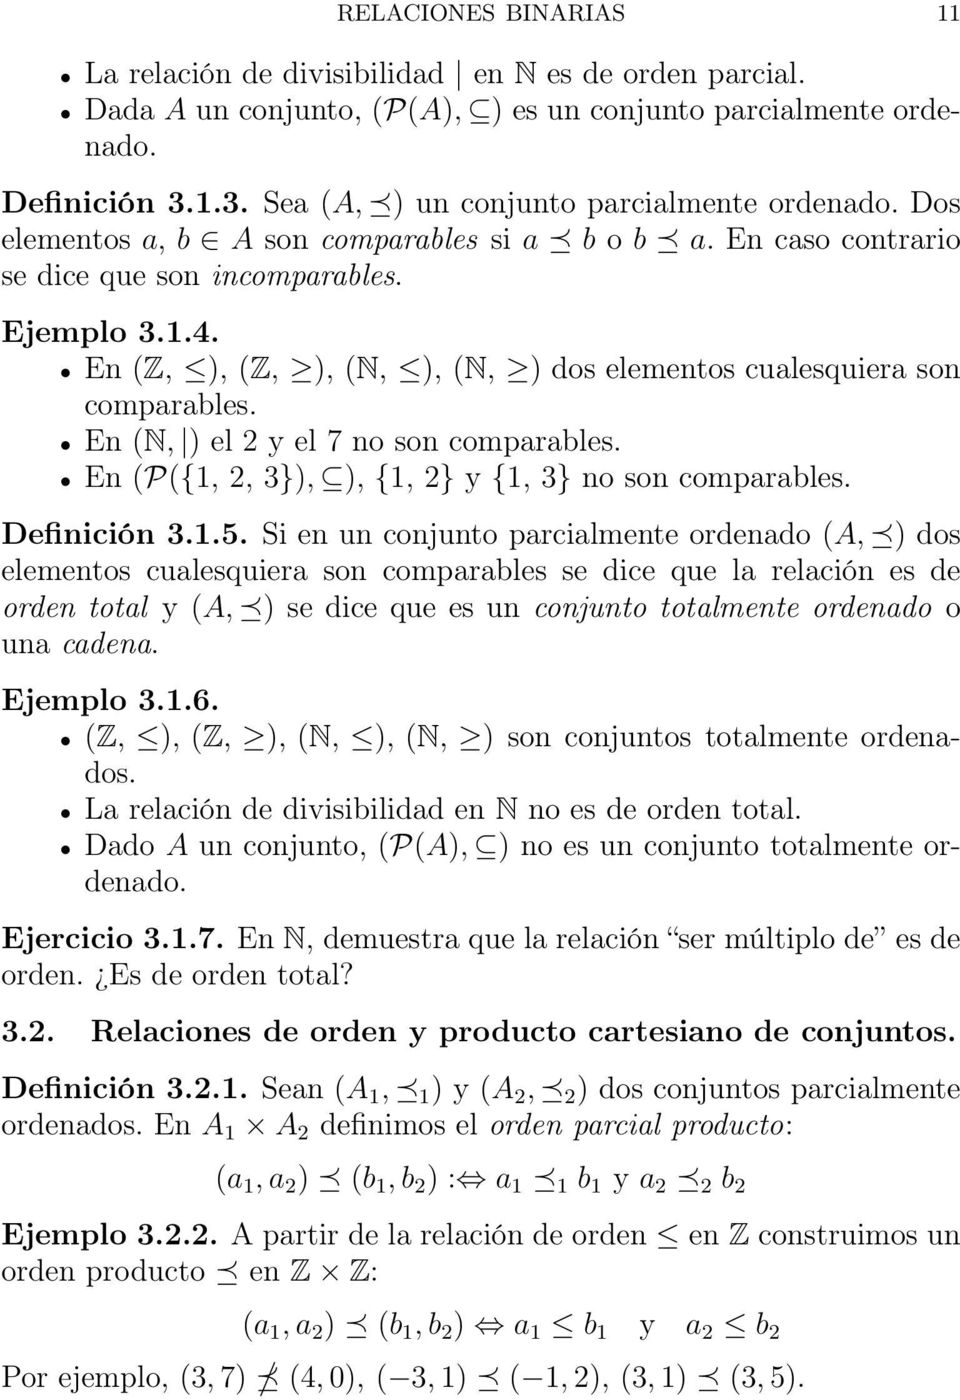 En (Z, ), (Z, ), (N, ), (N, ) dos elementos cualesquiera son comparables. En (N, ) el 2 y el 7 no son comparables. En (P({1, 2, 3}), ), {1, 2} y {1, 3} no son comparables. Definición 3.1.5.